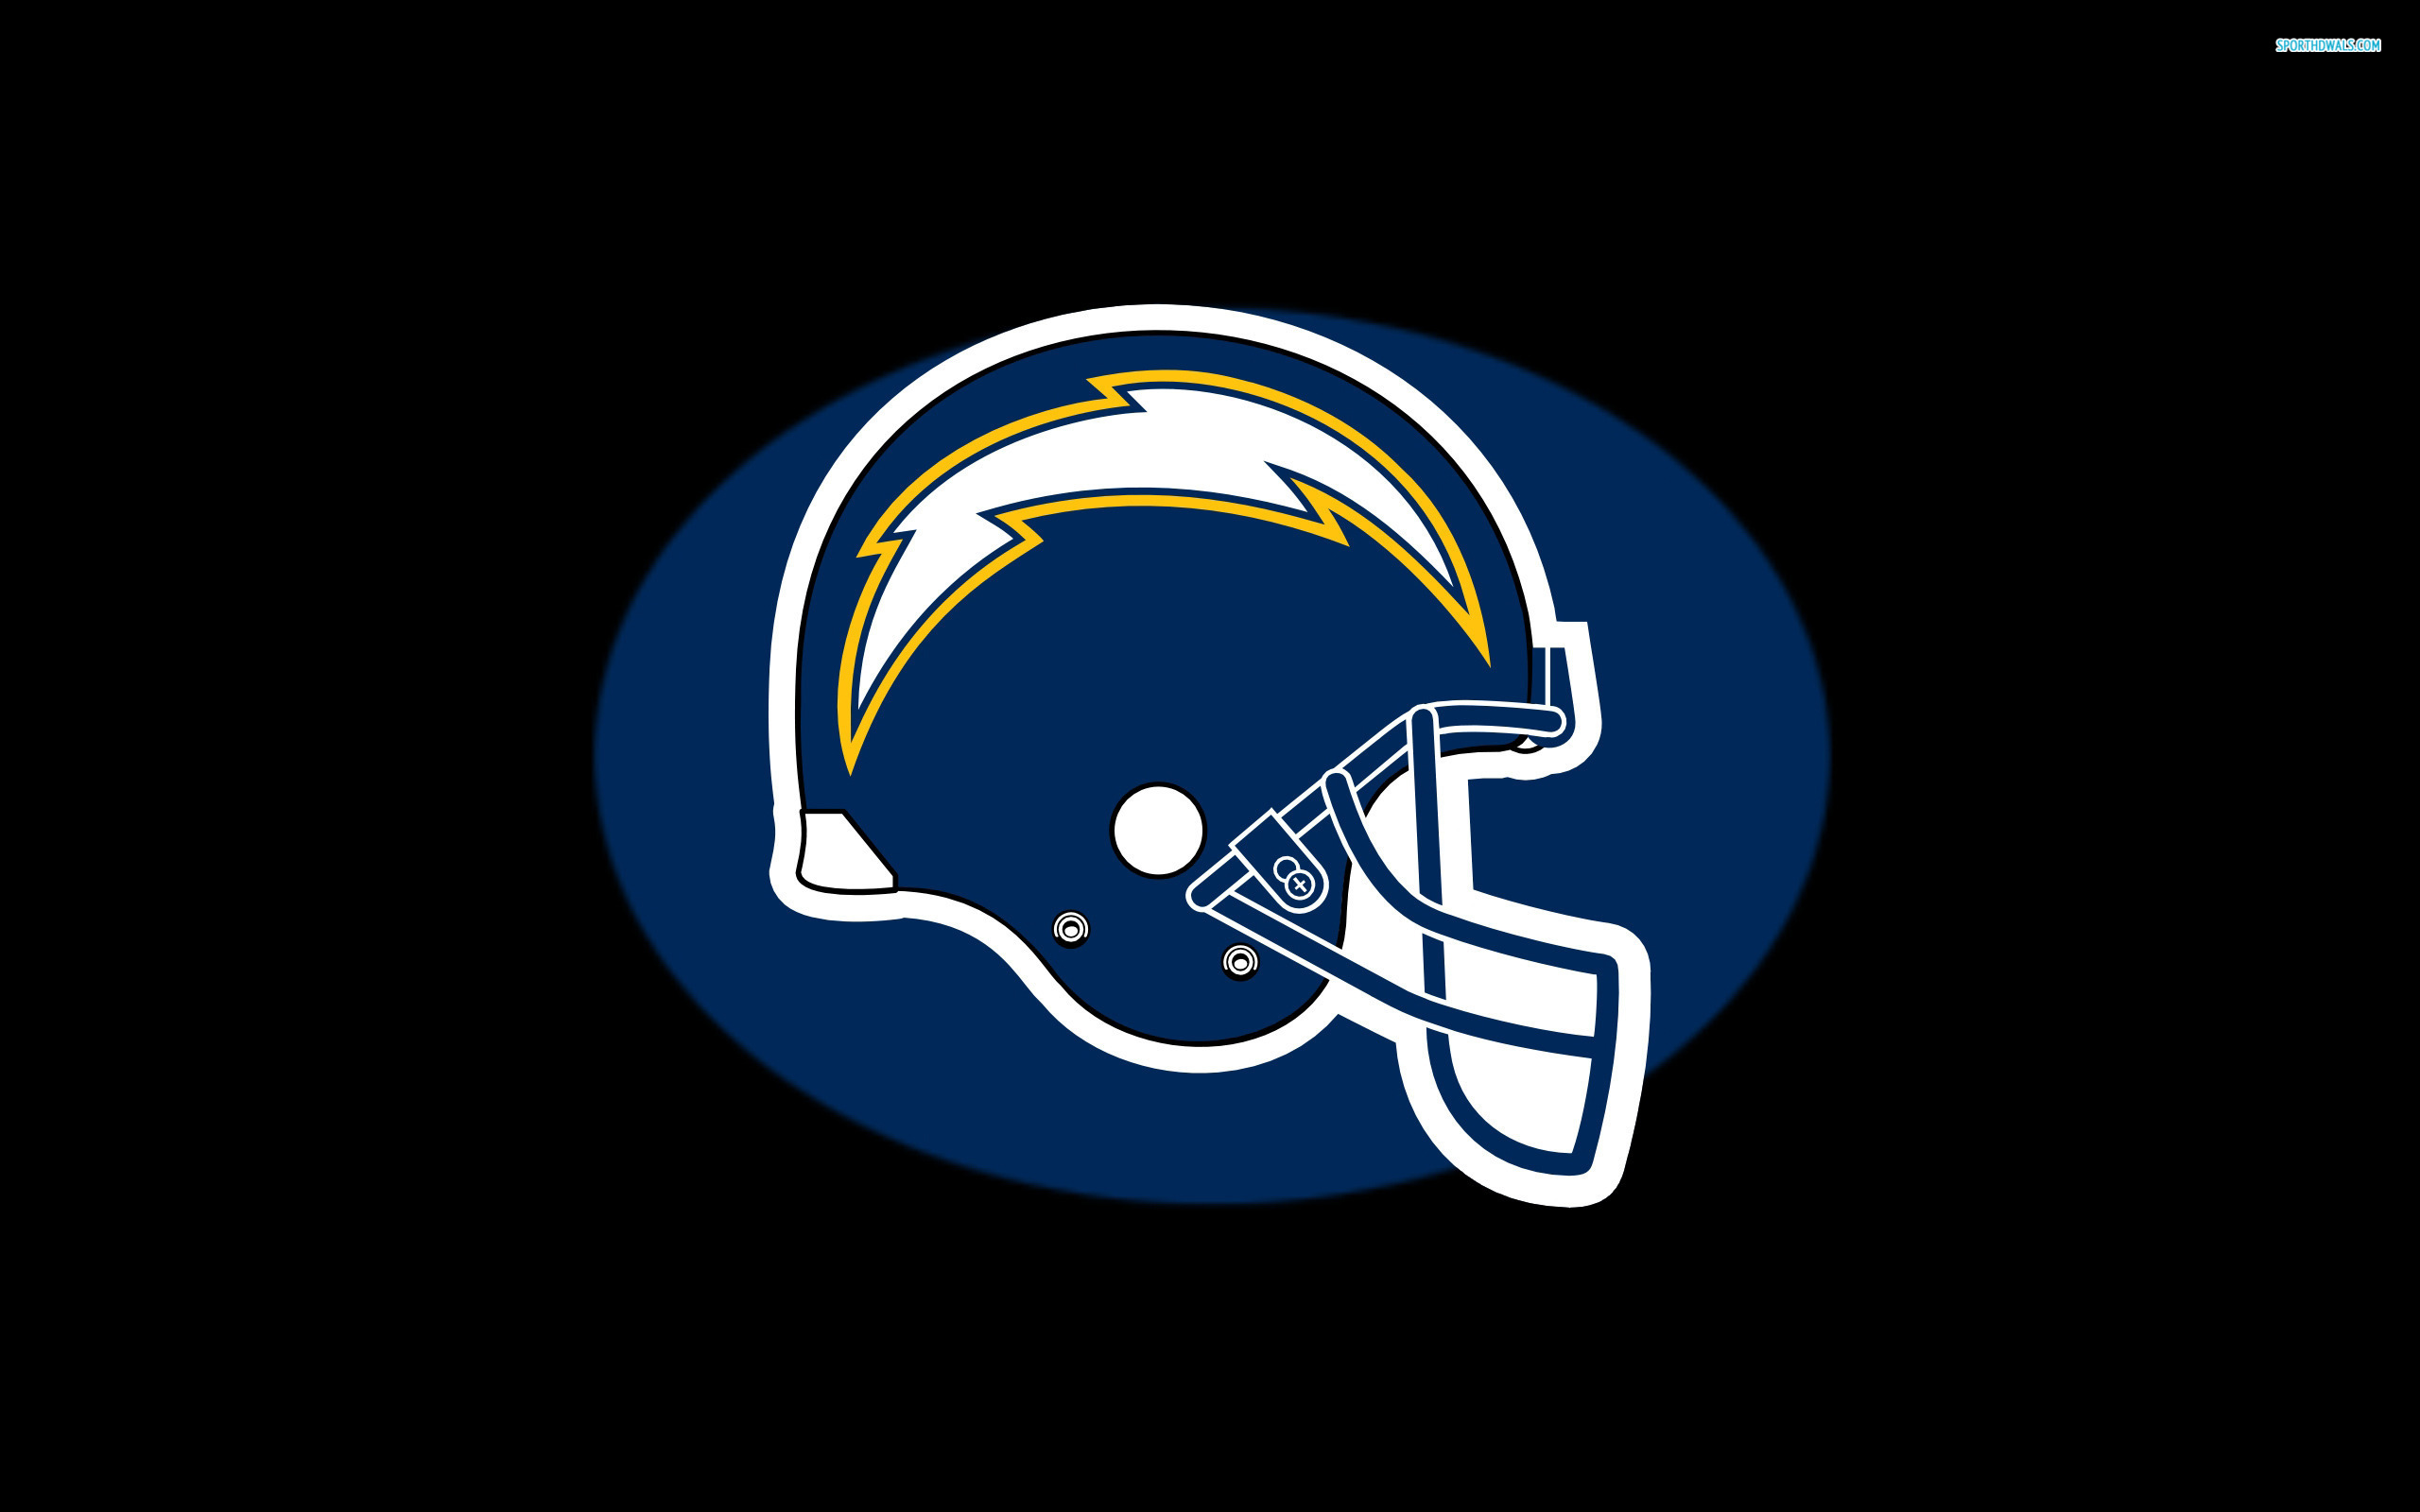 San Diego Chargers Nfl Football Fz Wallpaper 2560x1600